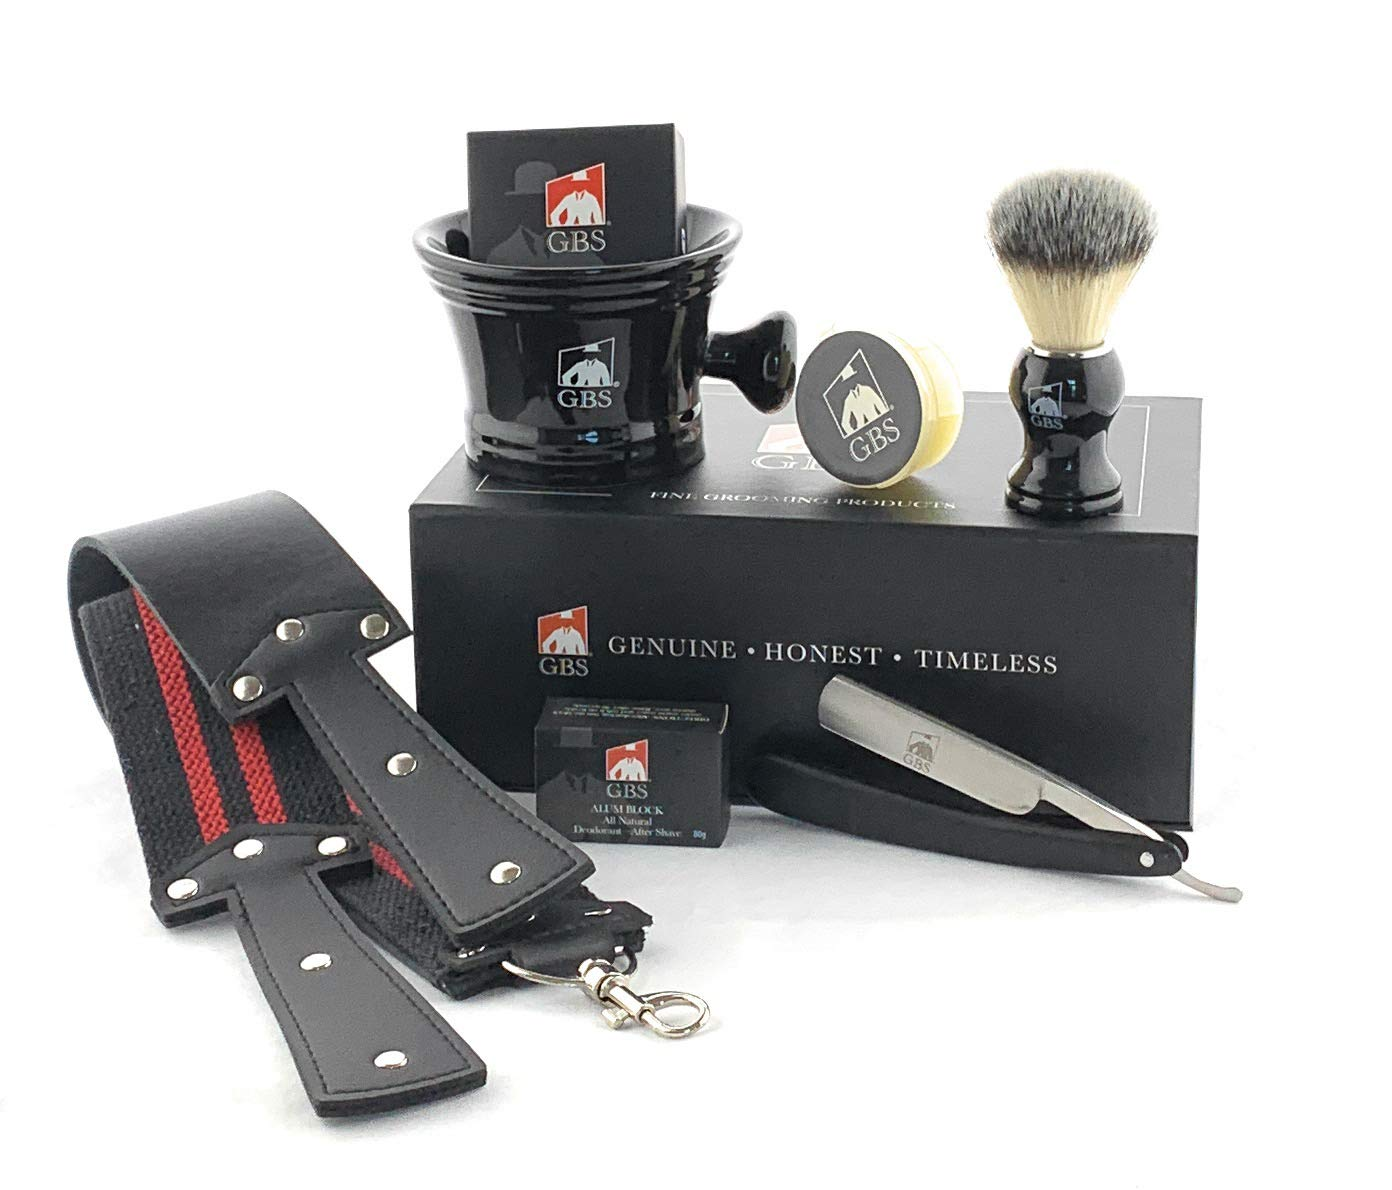 """GBS""""Shave Ready"""" Wood Straight Razor + Complete Beard/Shaving Set - Gift Box - Mug, Natural Soap, Brush, Alum block, Strop and Paste! For the Ultimate Old Fashioned Wet Shaving Experience"""